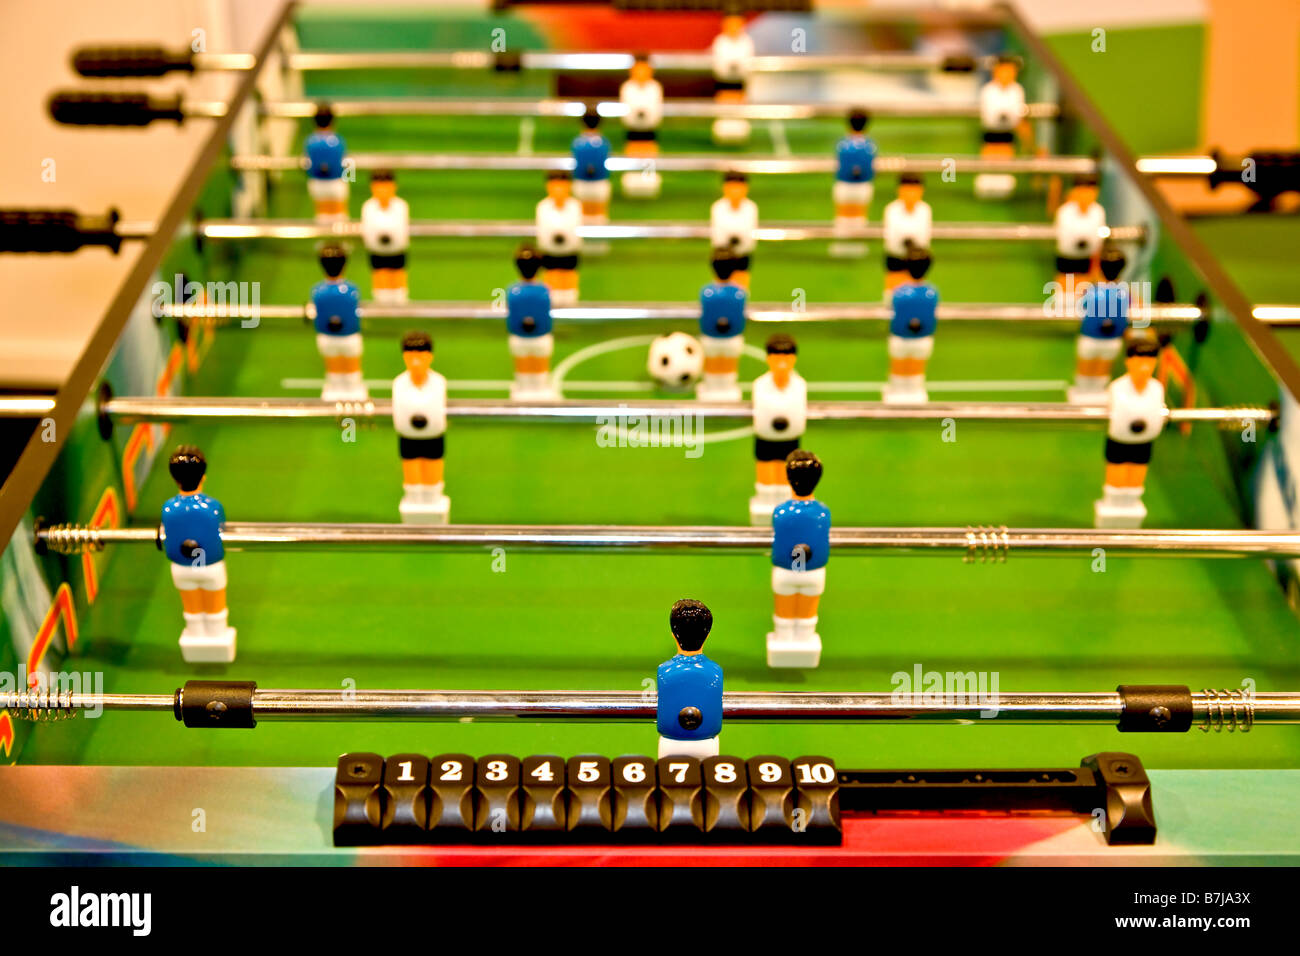 Table soccer game - Stock Image